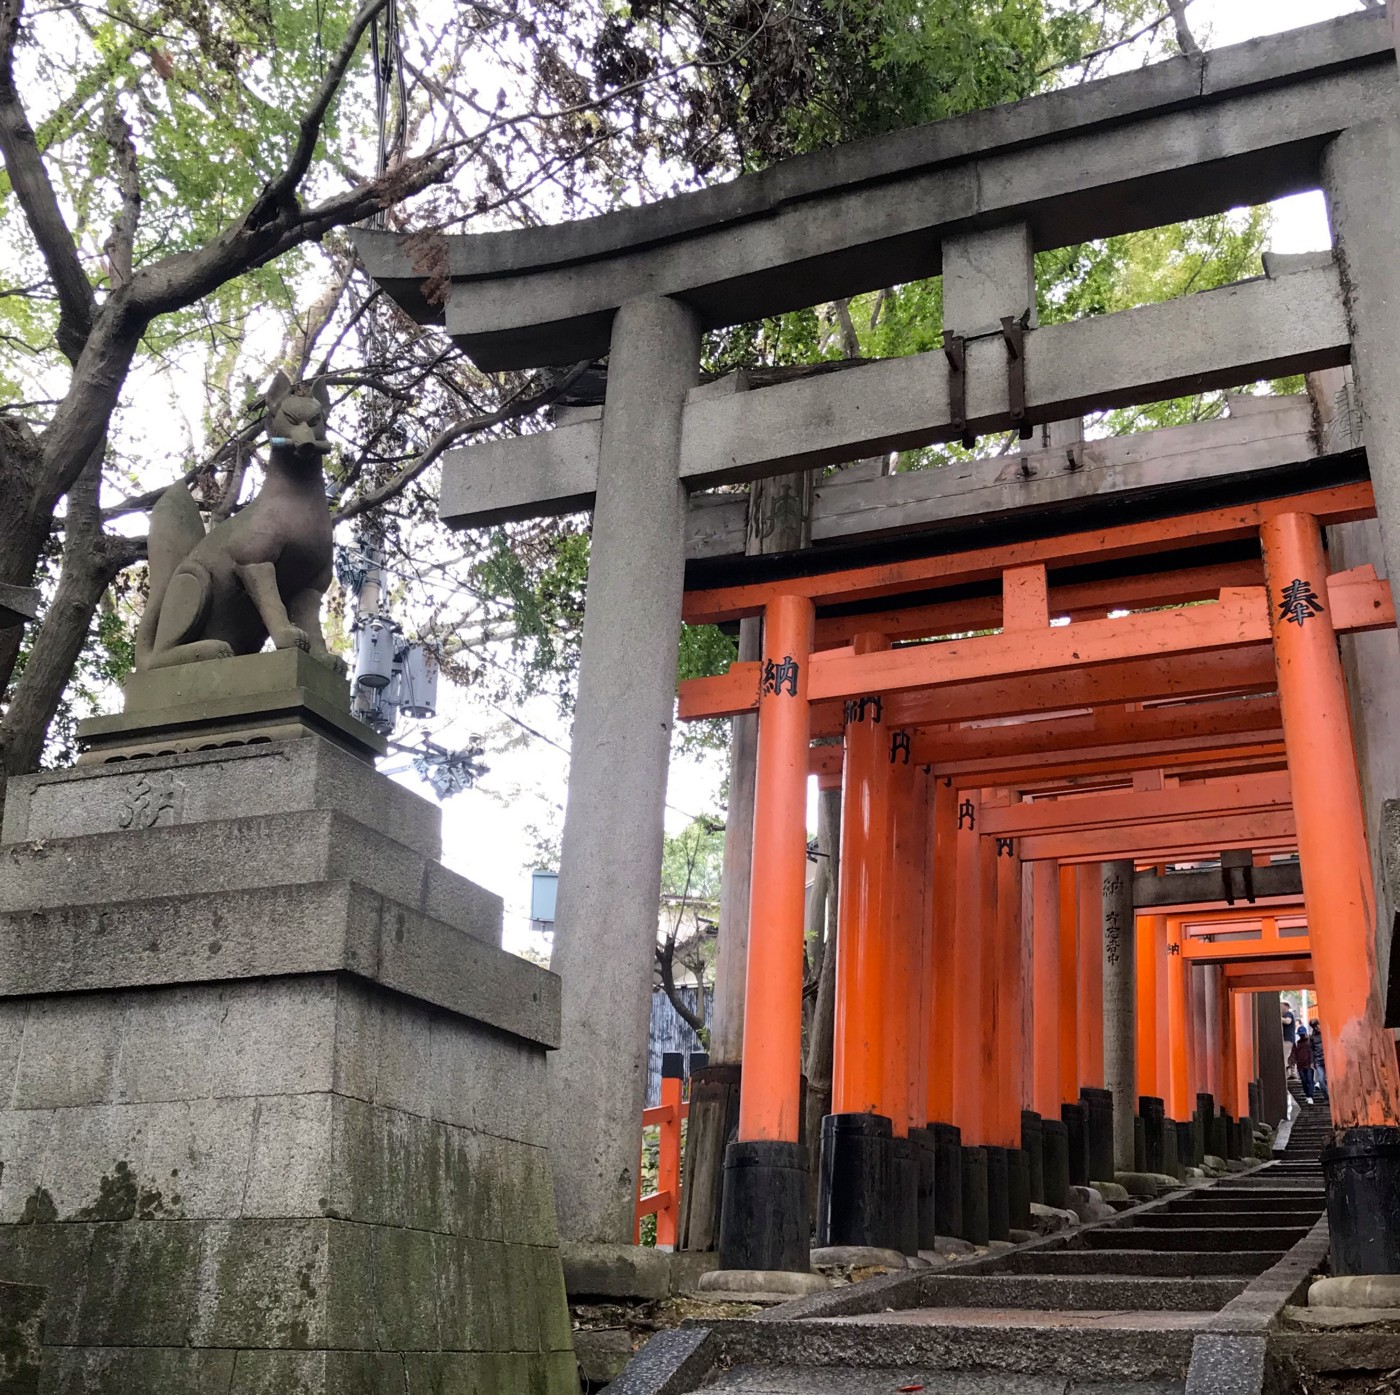 Inari fox statue guarding the entrance to stairs beneath many closely-packed vermilion torii gates at Fushimi Grand Shrine